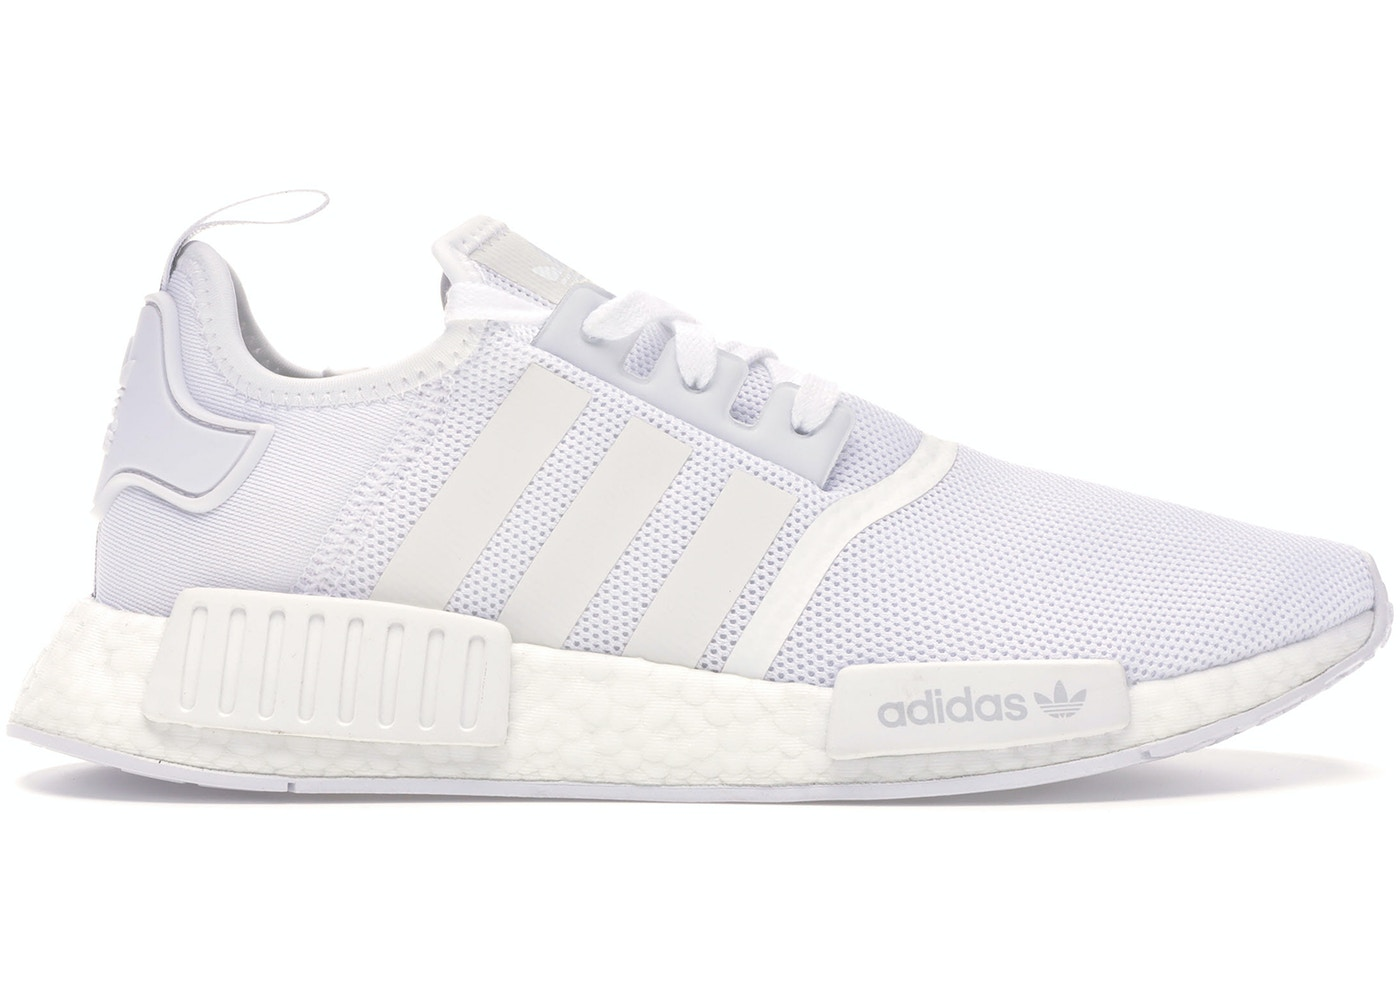 newest 112de 0f968 adidas NMD R1 Footwear White Trace Grey